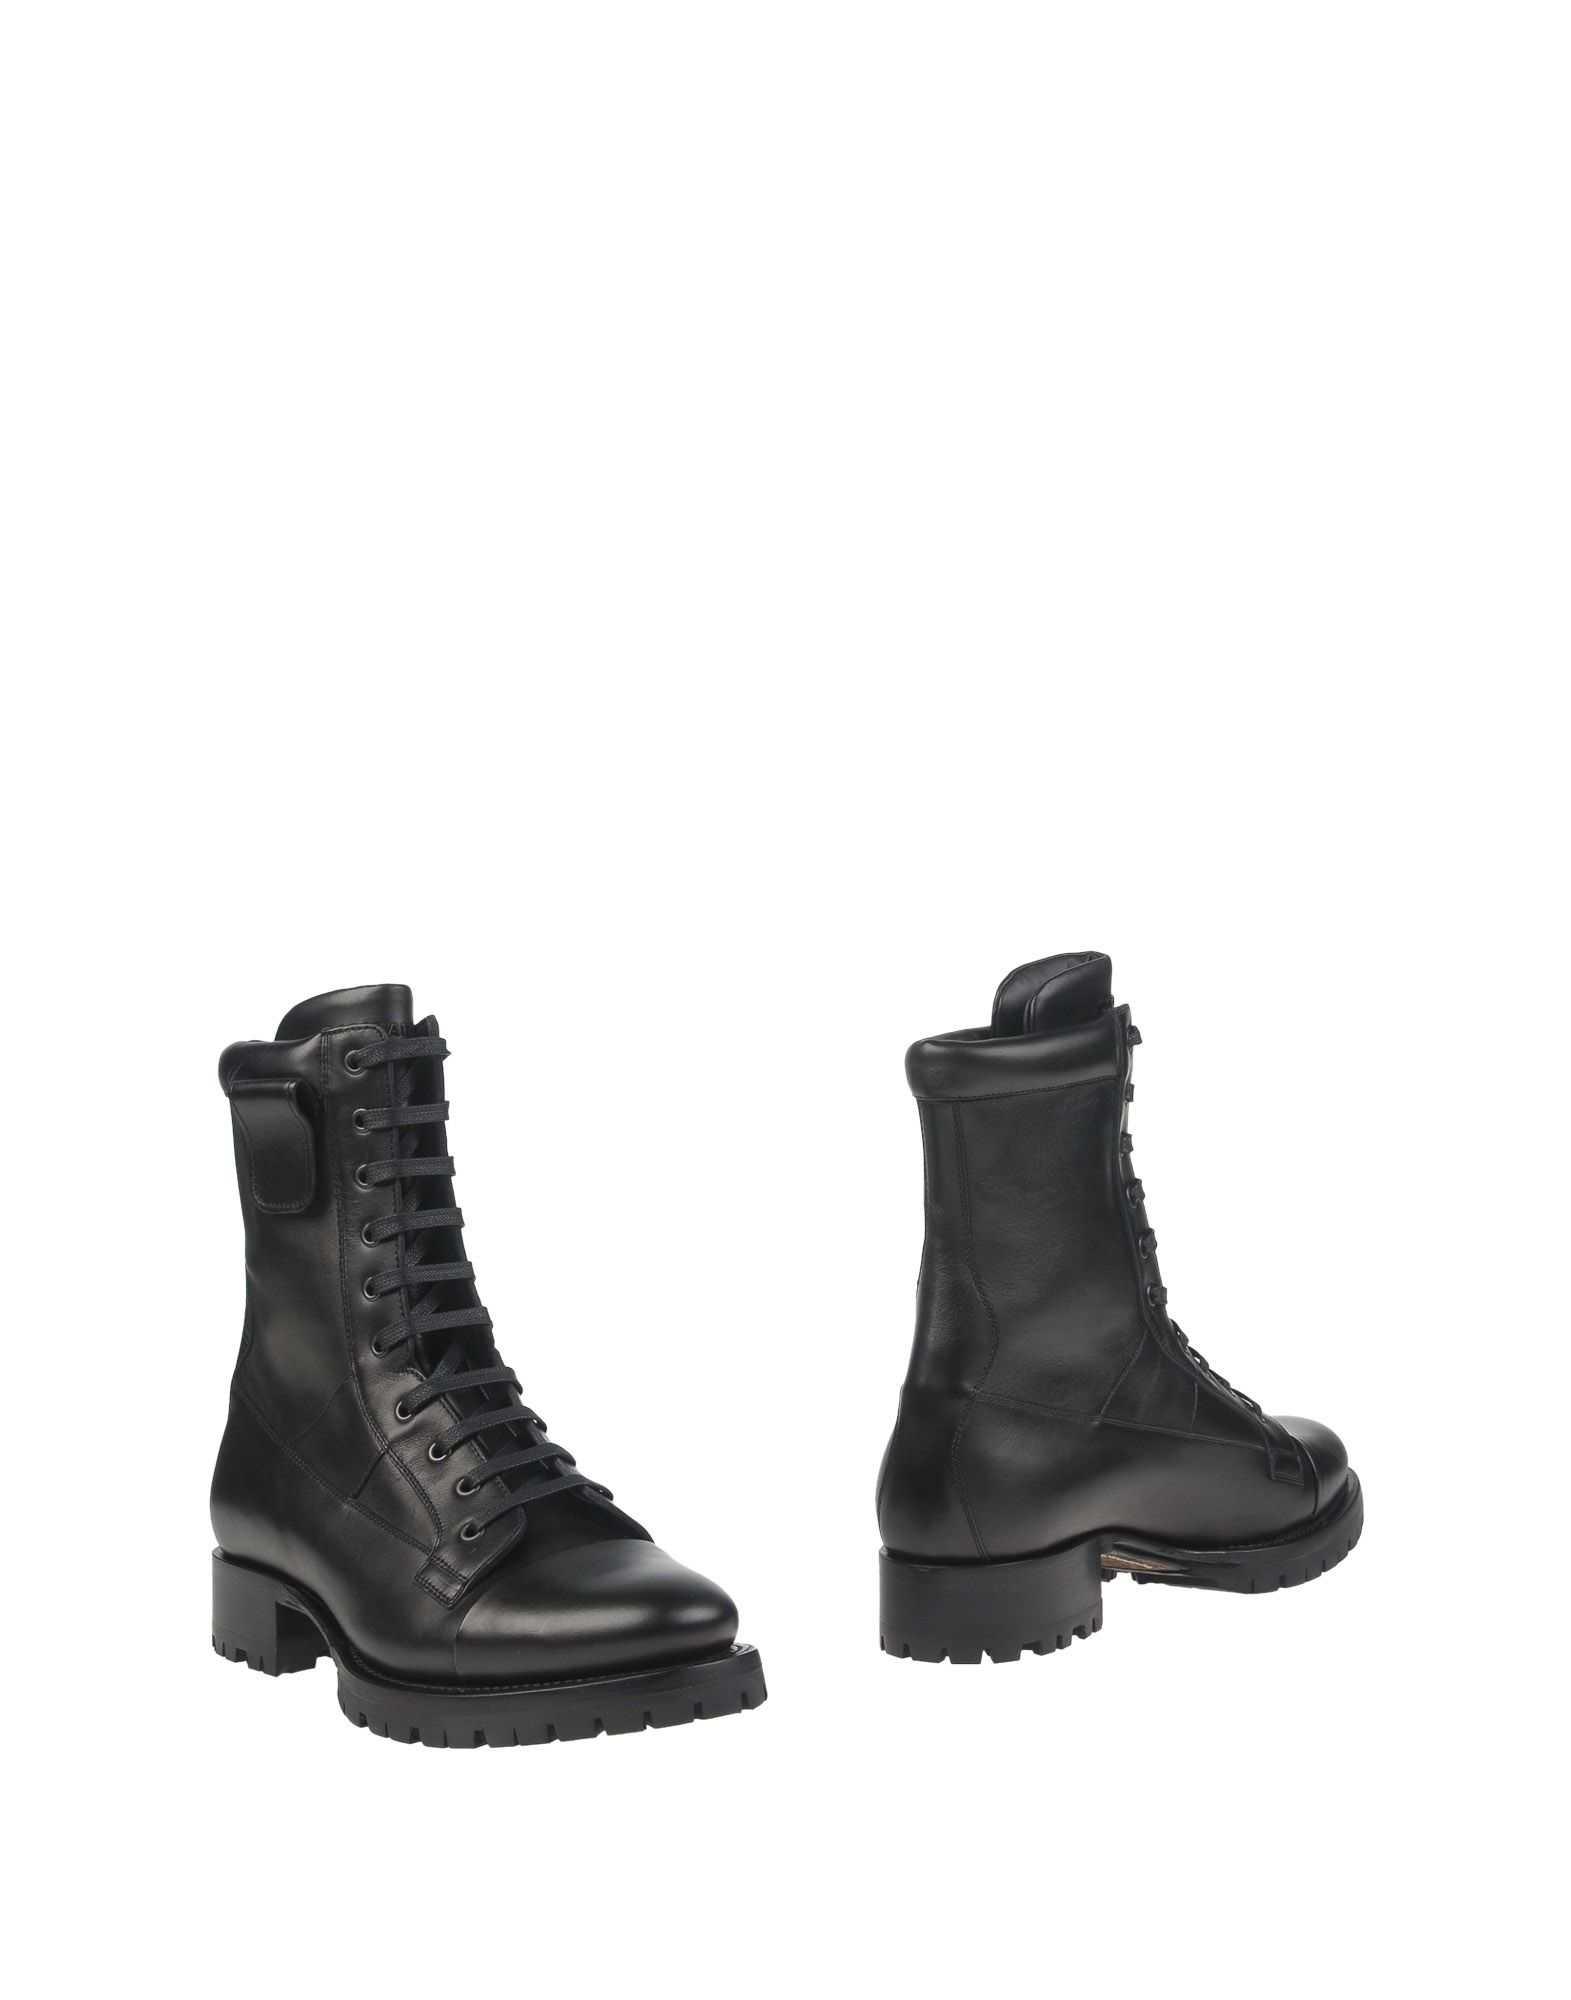 Dsquared2 on Boots - Men Dsquared2 Boots online on Dsquared2  Canada - 11301797RR 88bf36